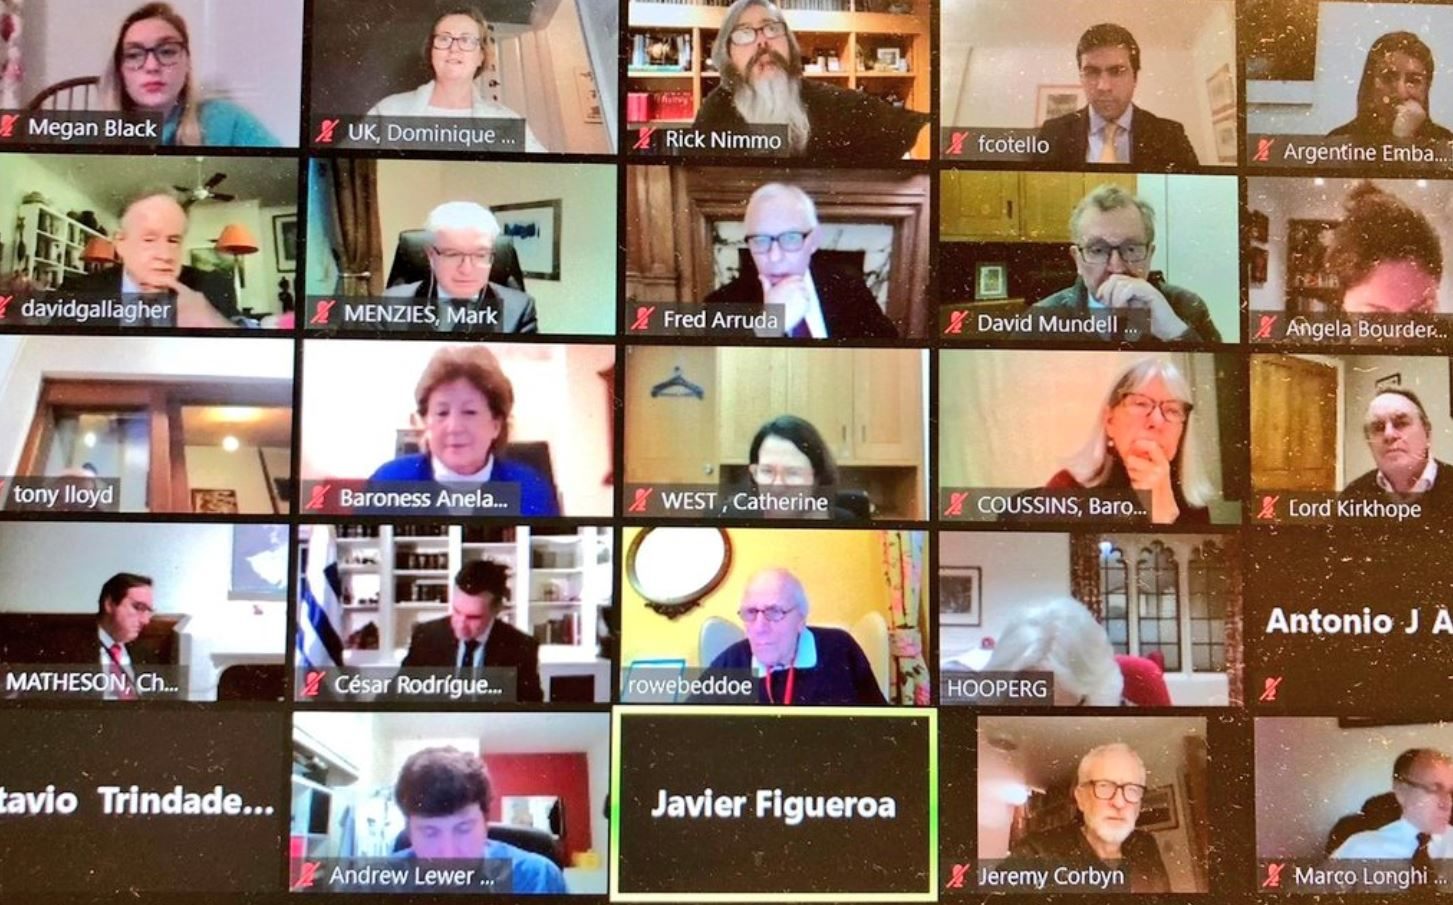 BGIPU hosted a virtual Latin America Roundtable which provided a great opportunity for UK Parliamentarians to hear first-hand accounts of political, social and economic developments in the region.